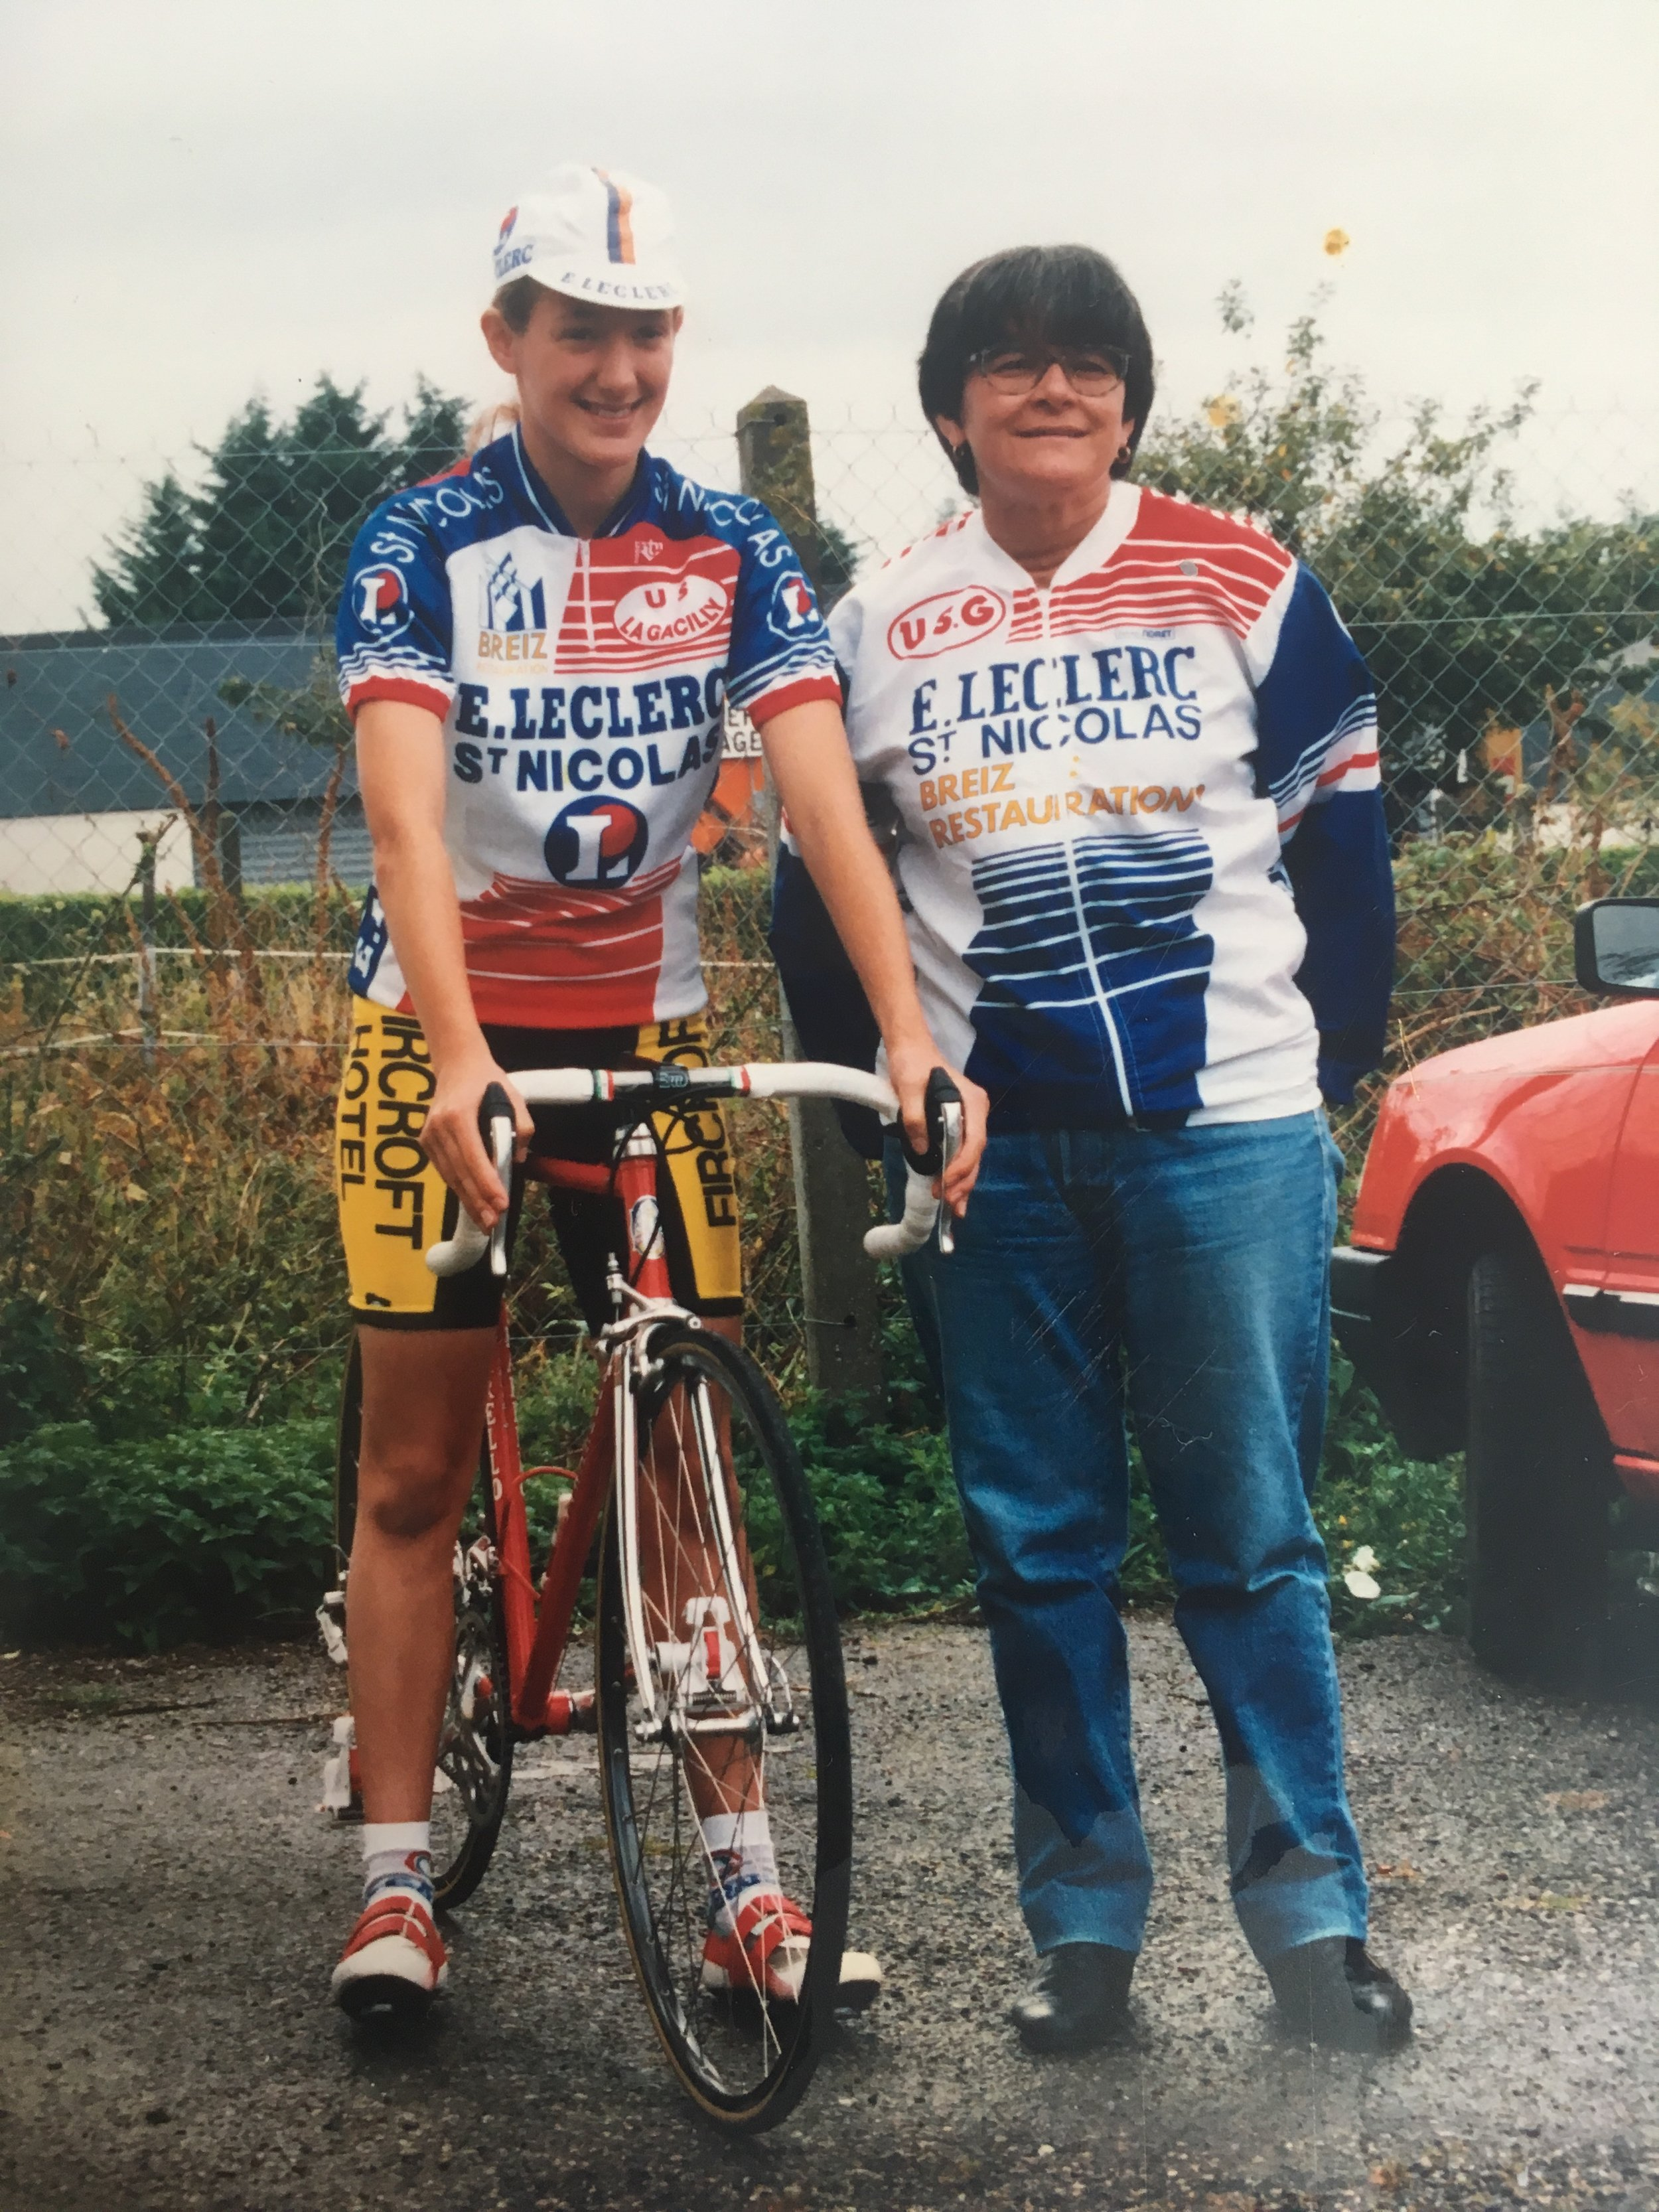 Racing for VC La Gacilly on hoiiday in the mid 90's